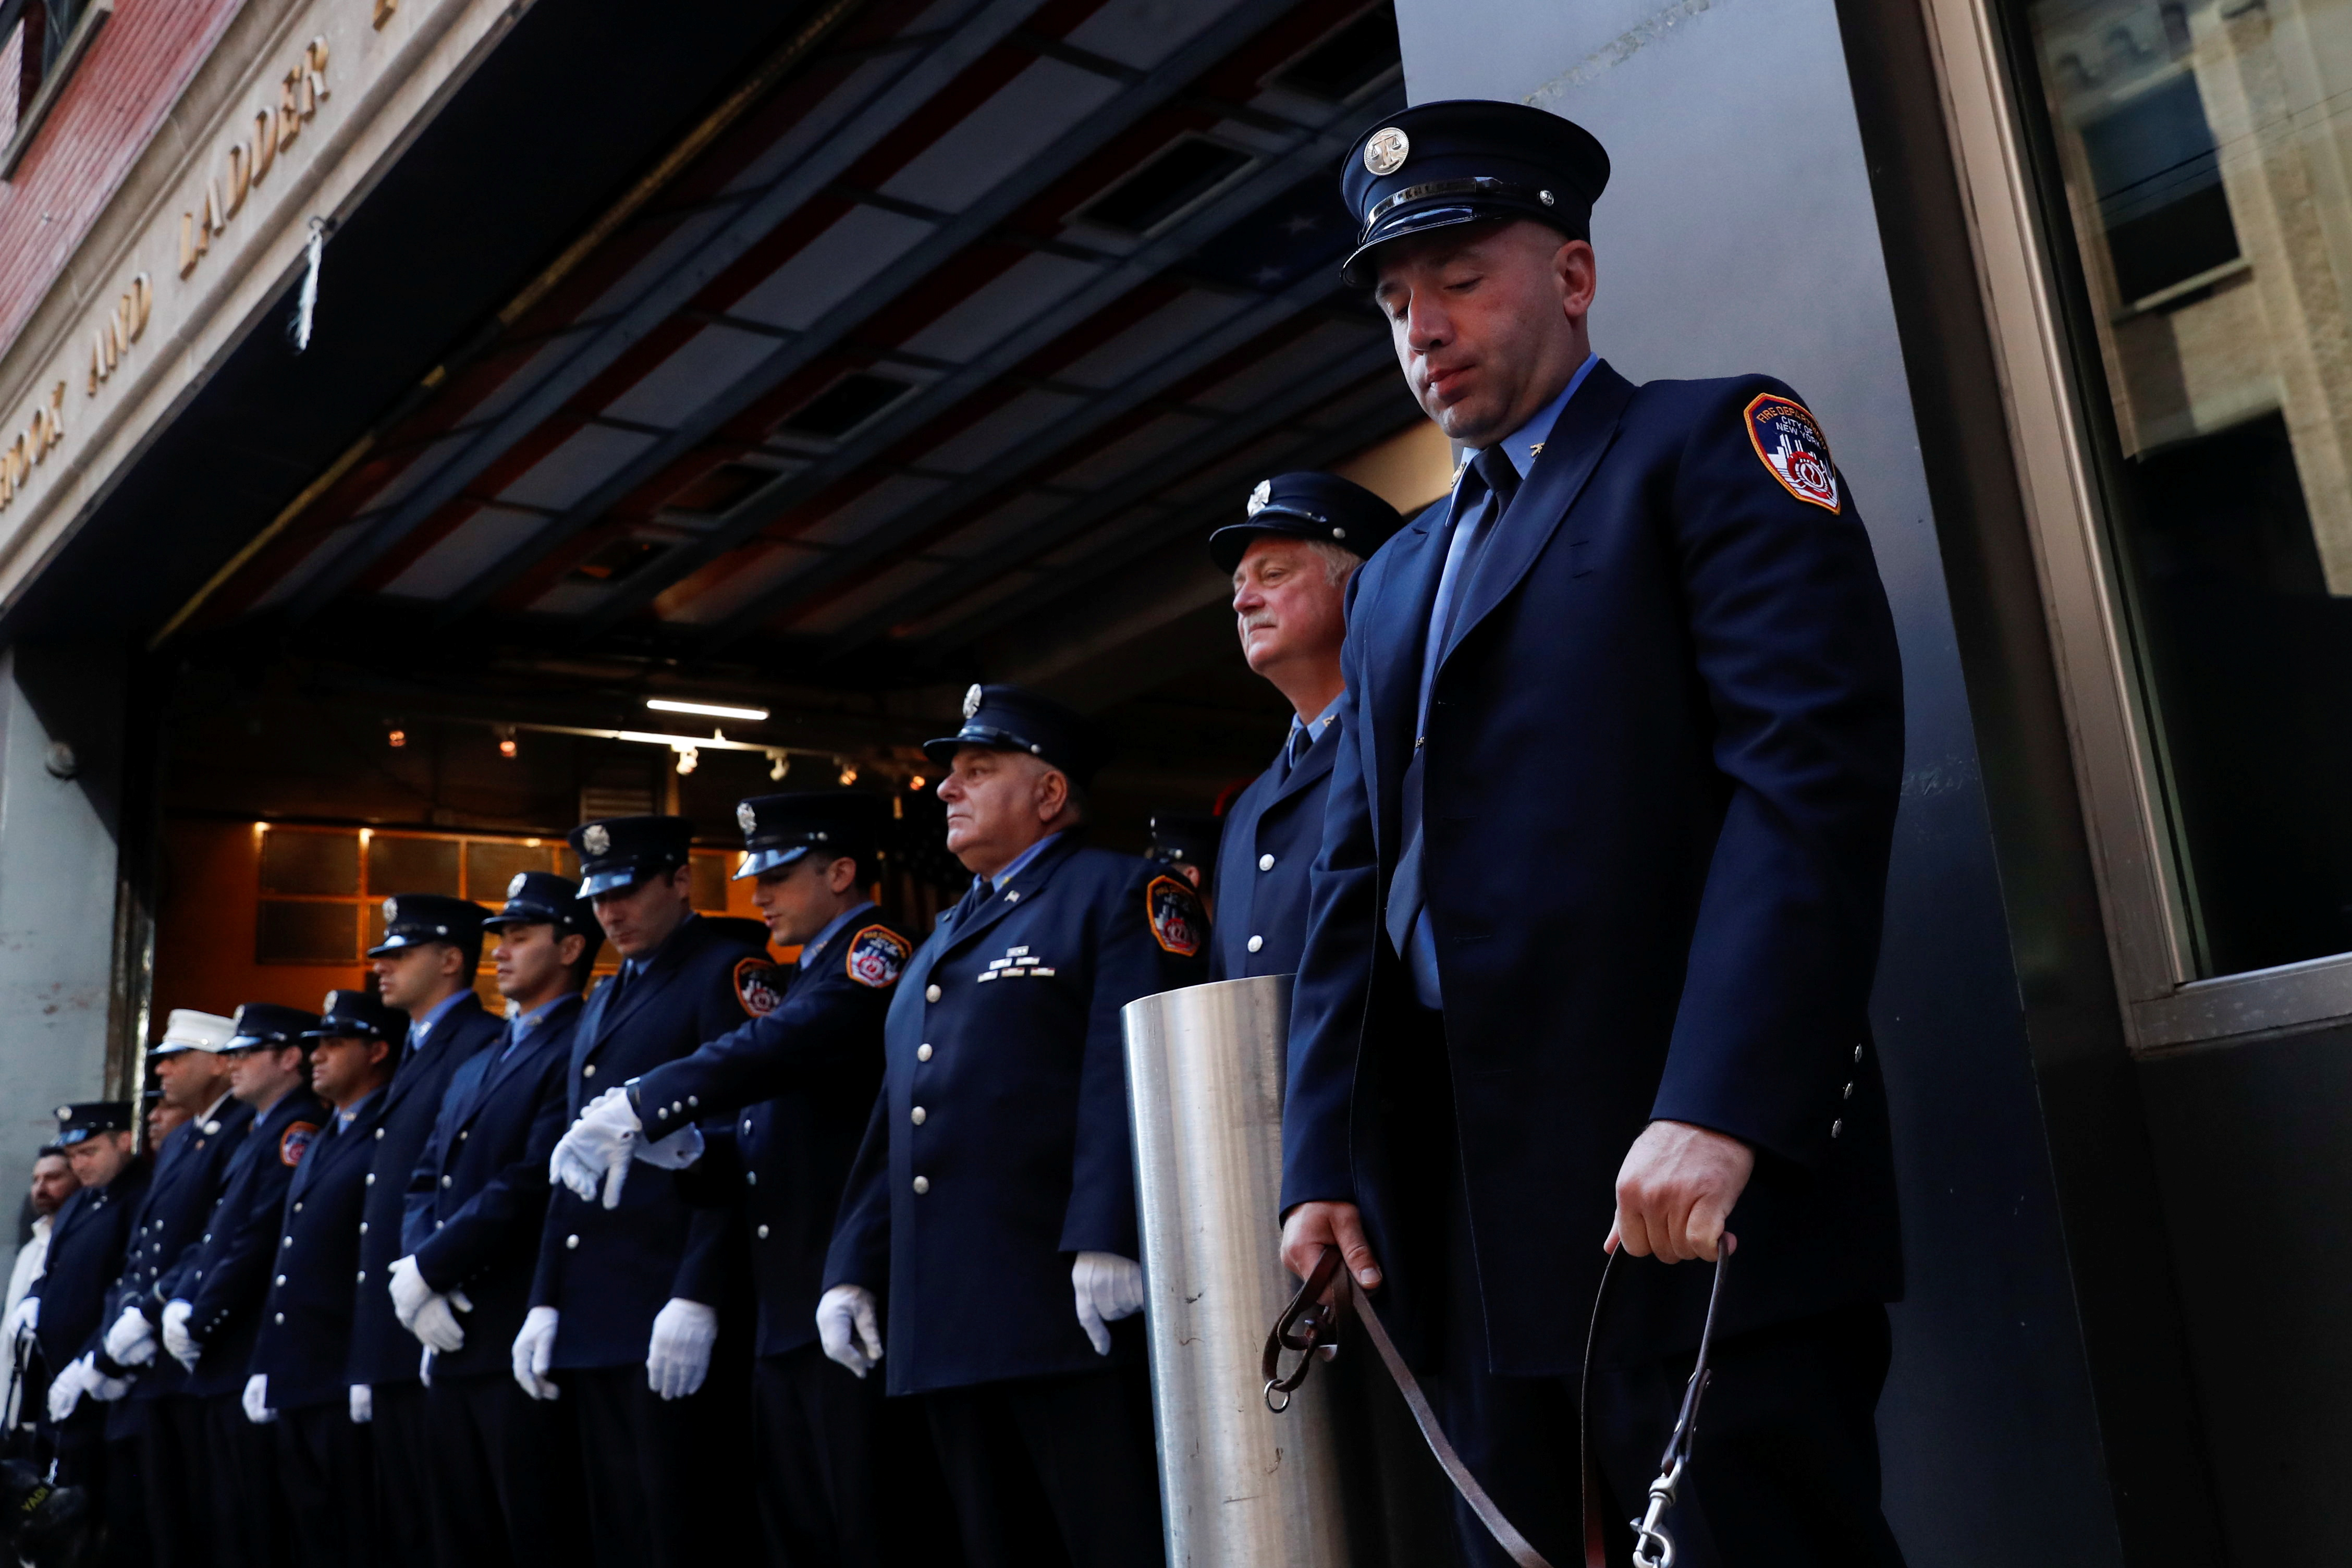 Firefighters attend a ceremony marking the 20th anniversary of the September 11, 2001 attacks, at the FDNY Engine 1/Ladder 24 fire house in New York City, New York, U.S., September 11, 2021.  REUTERS/Shannon Stapleton